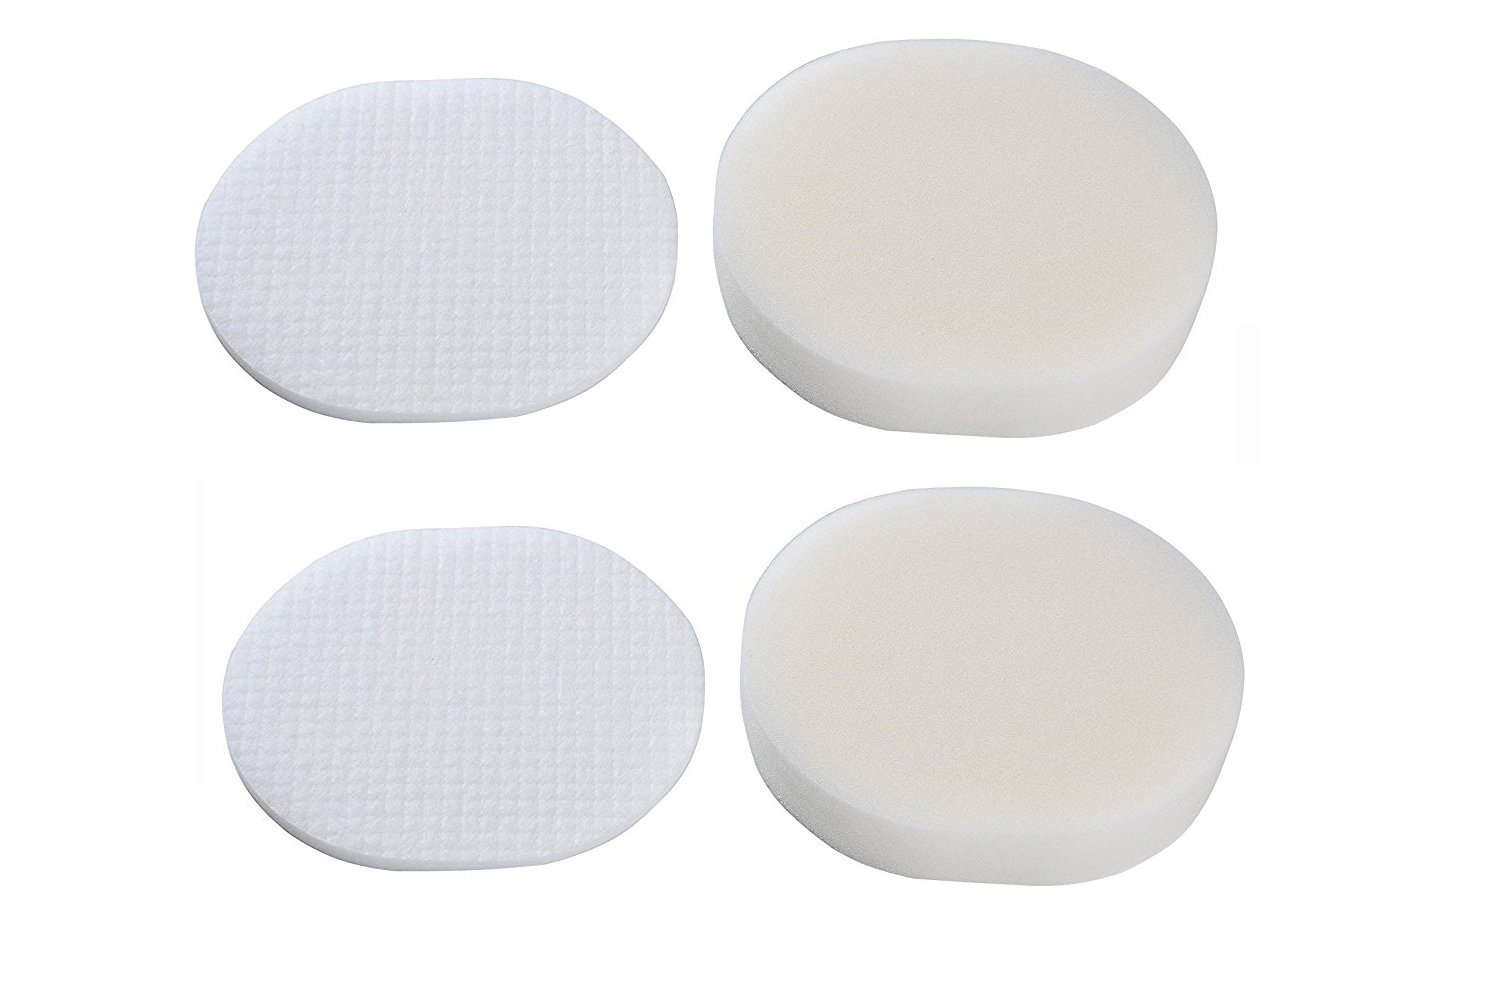 Green Label 2 Pack Foam and Felt Filter Kit for Shark Navigator Professional Vacuum Cleaners (compares to Shark XFF80). Fits: Shark NV70, NV80, NV90, UV420